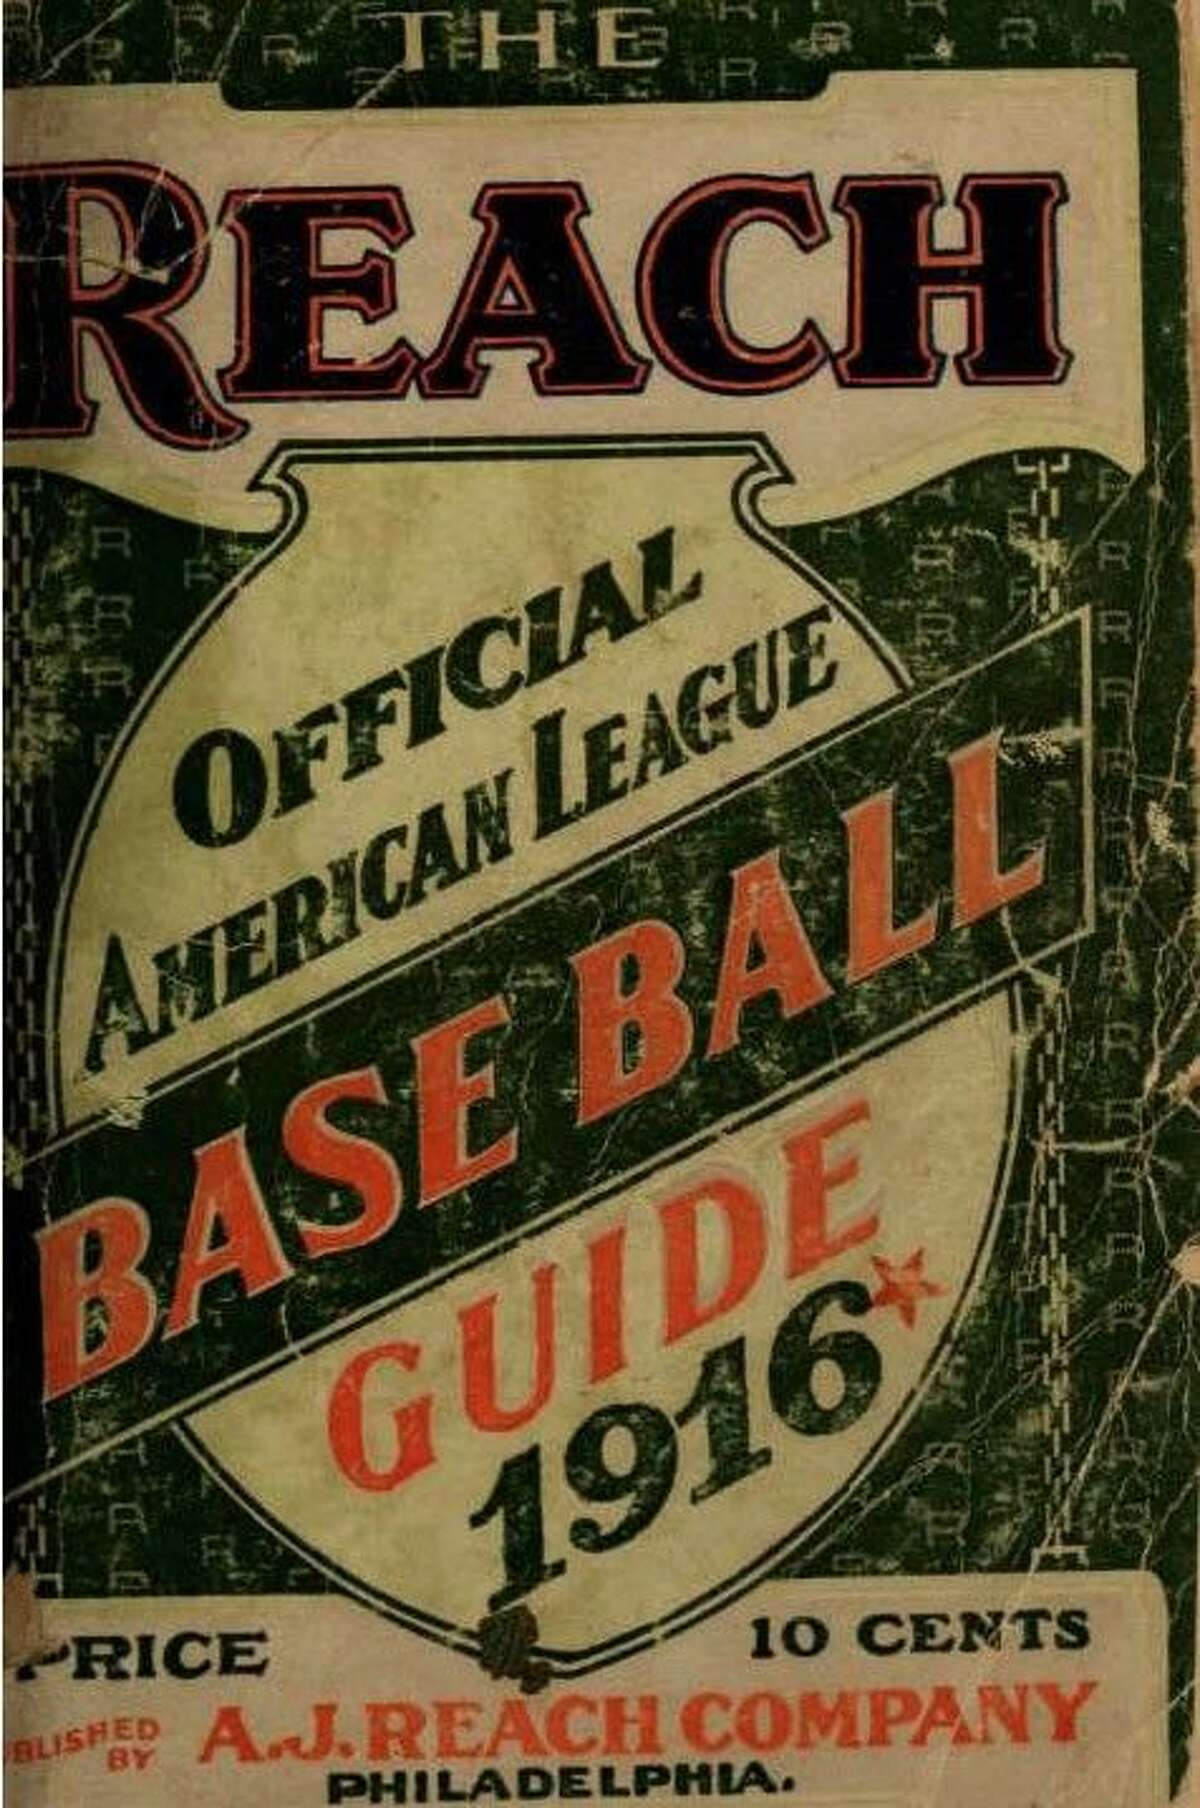 Shown is the front cover of the 1916 Reach Baseball Guide.